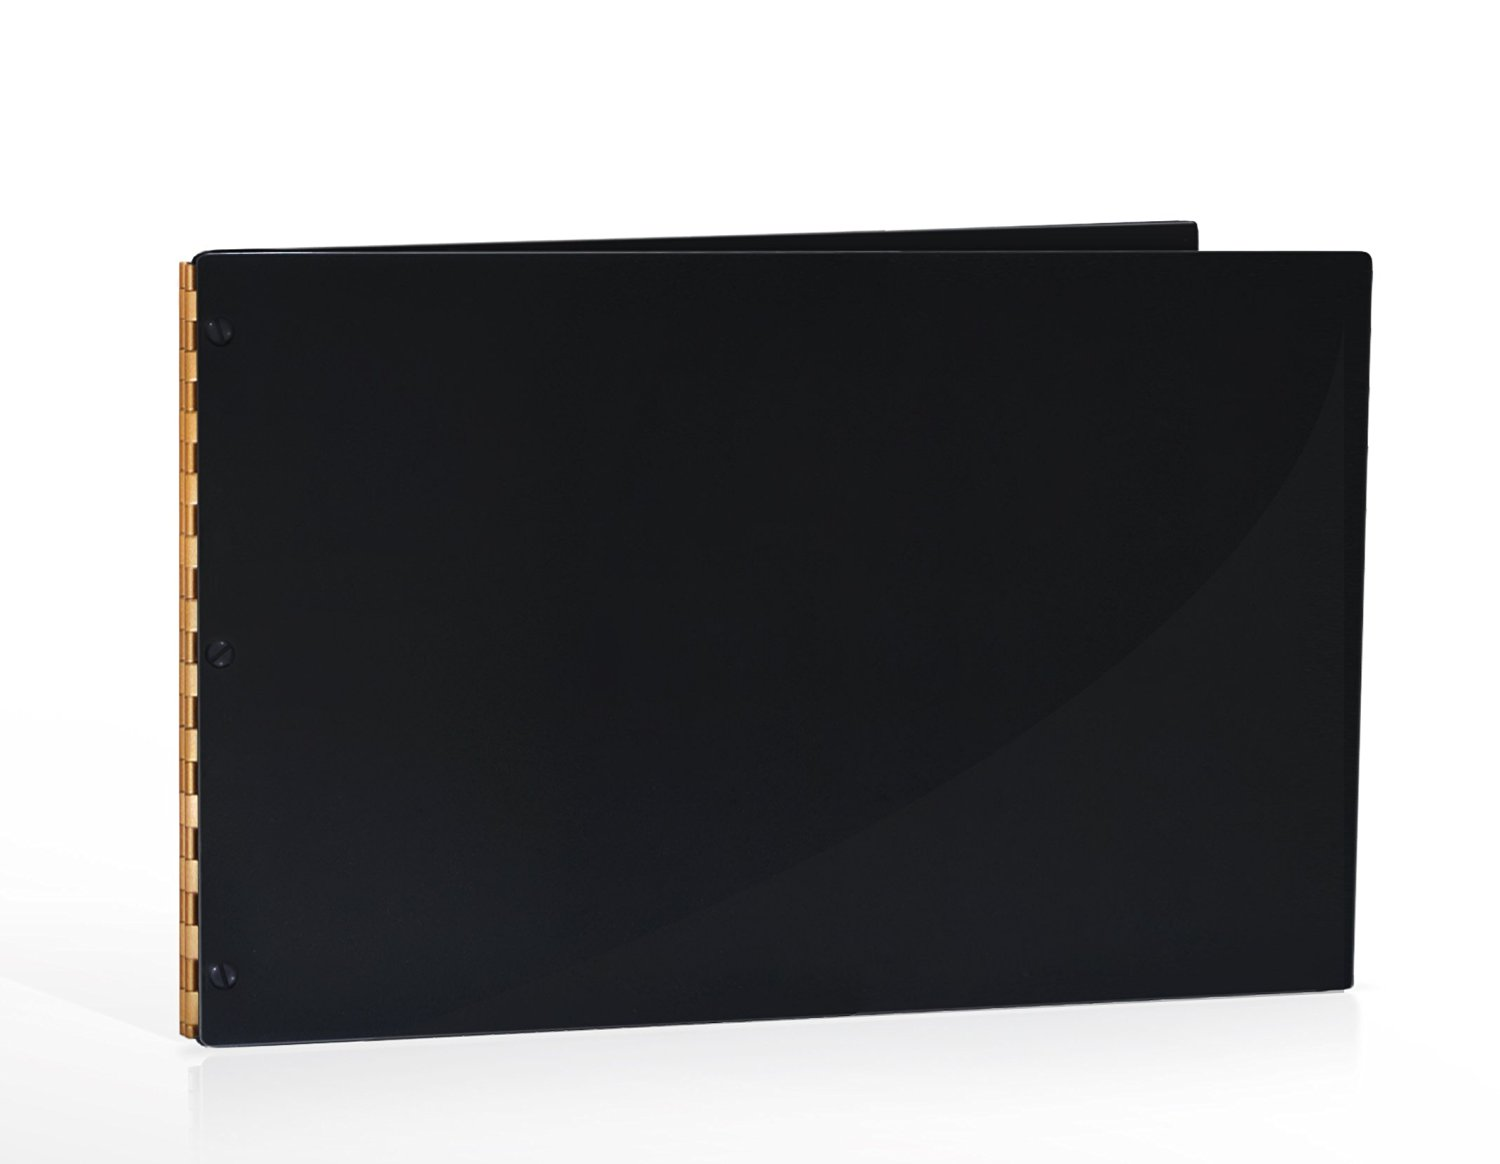 11x14 Landscape Black Glossy Portfolio with Gold Hinges. Portfolio book, Screw post portfolio, Portfolio Presentation. Engraving services are not included.